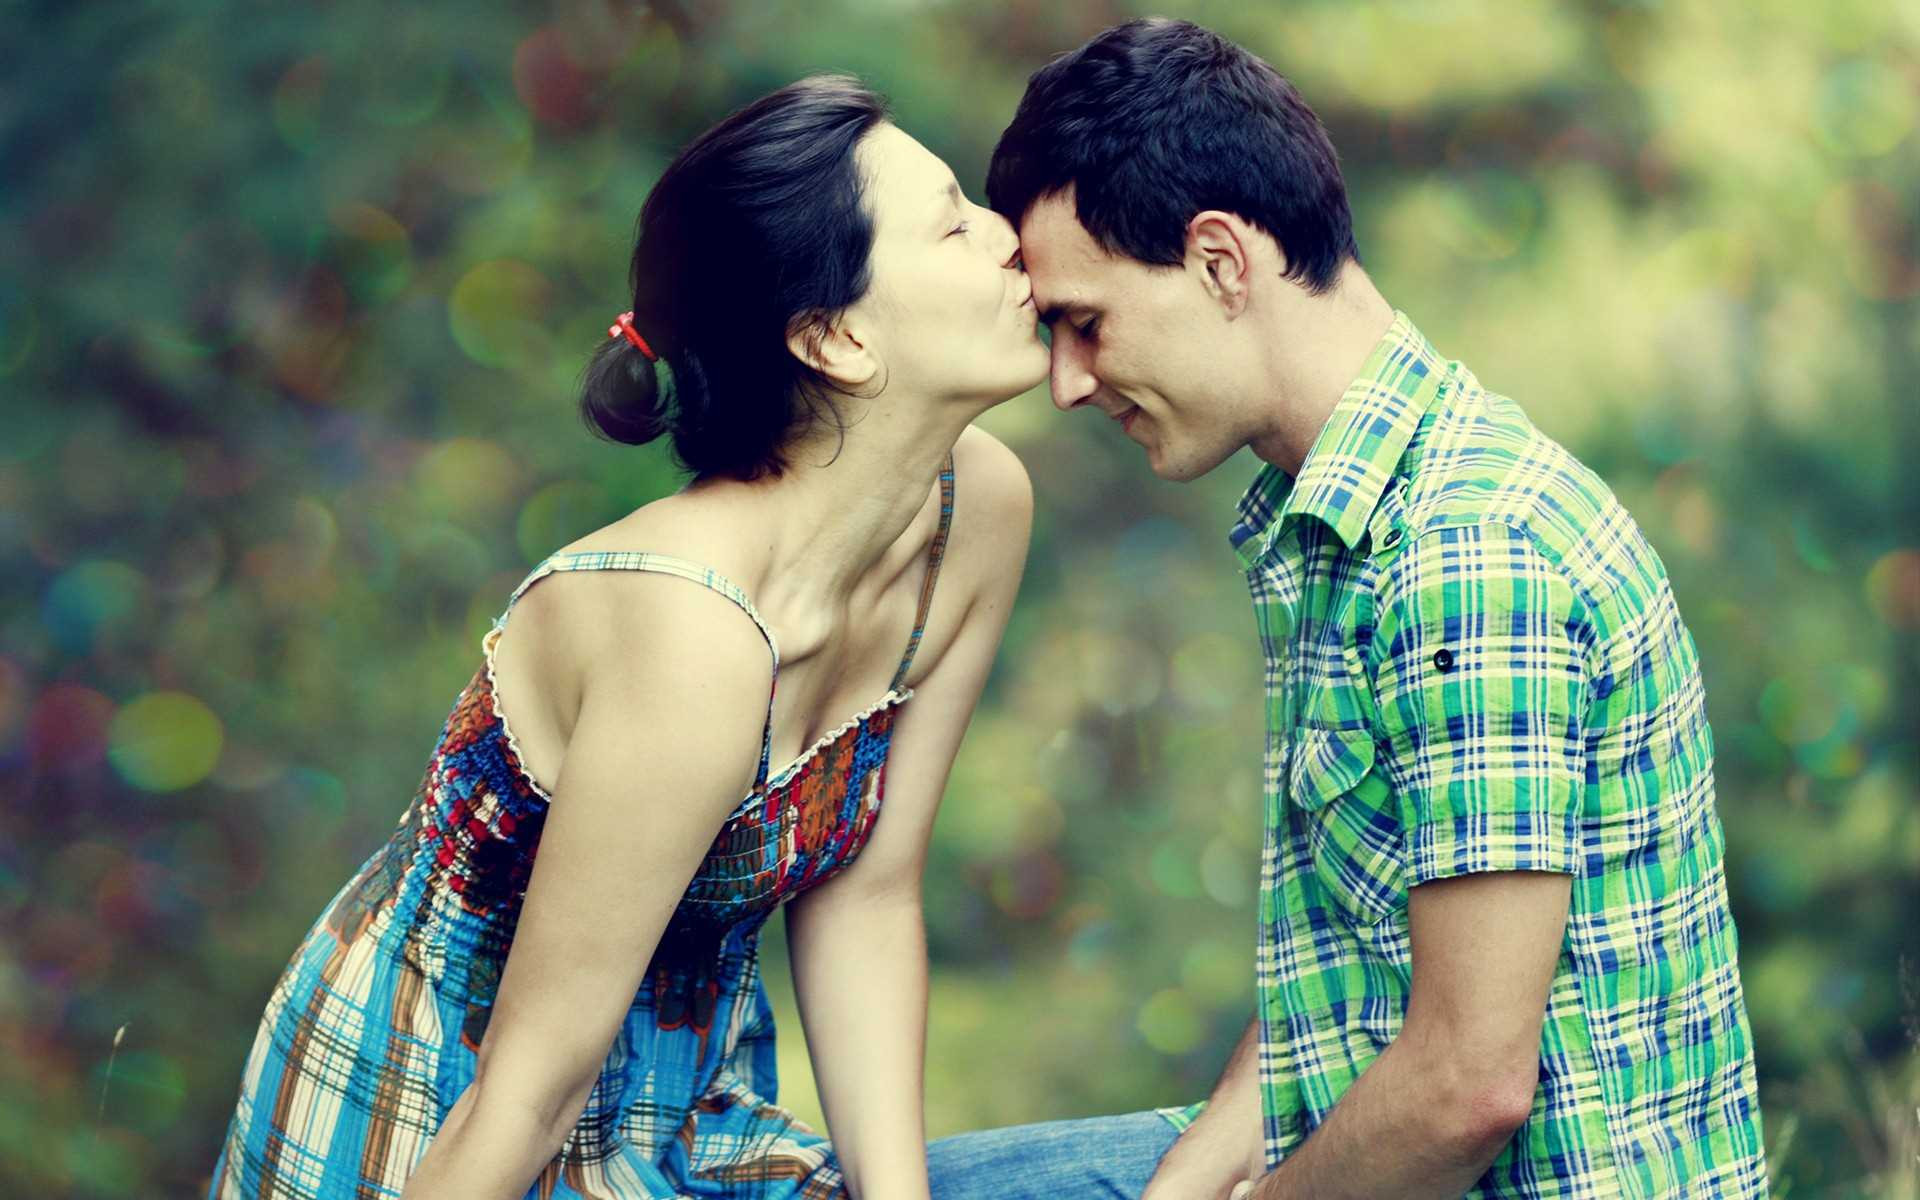 Sweet Couples Wallpapers 69 Images